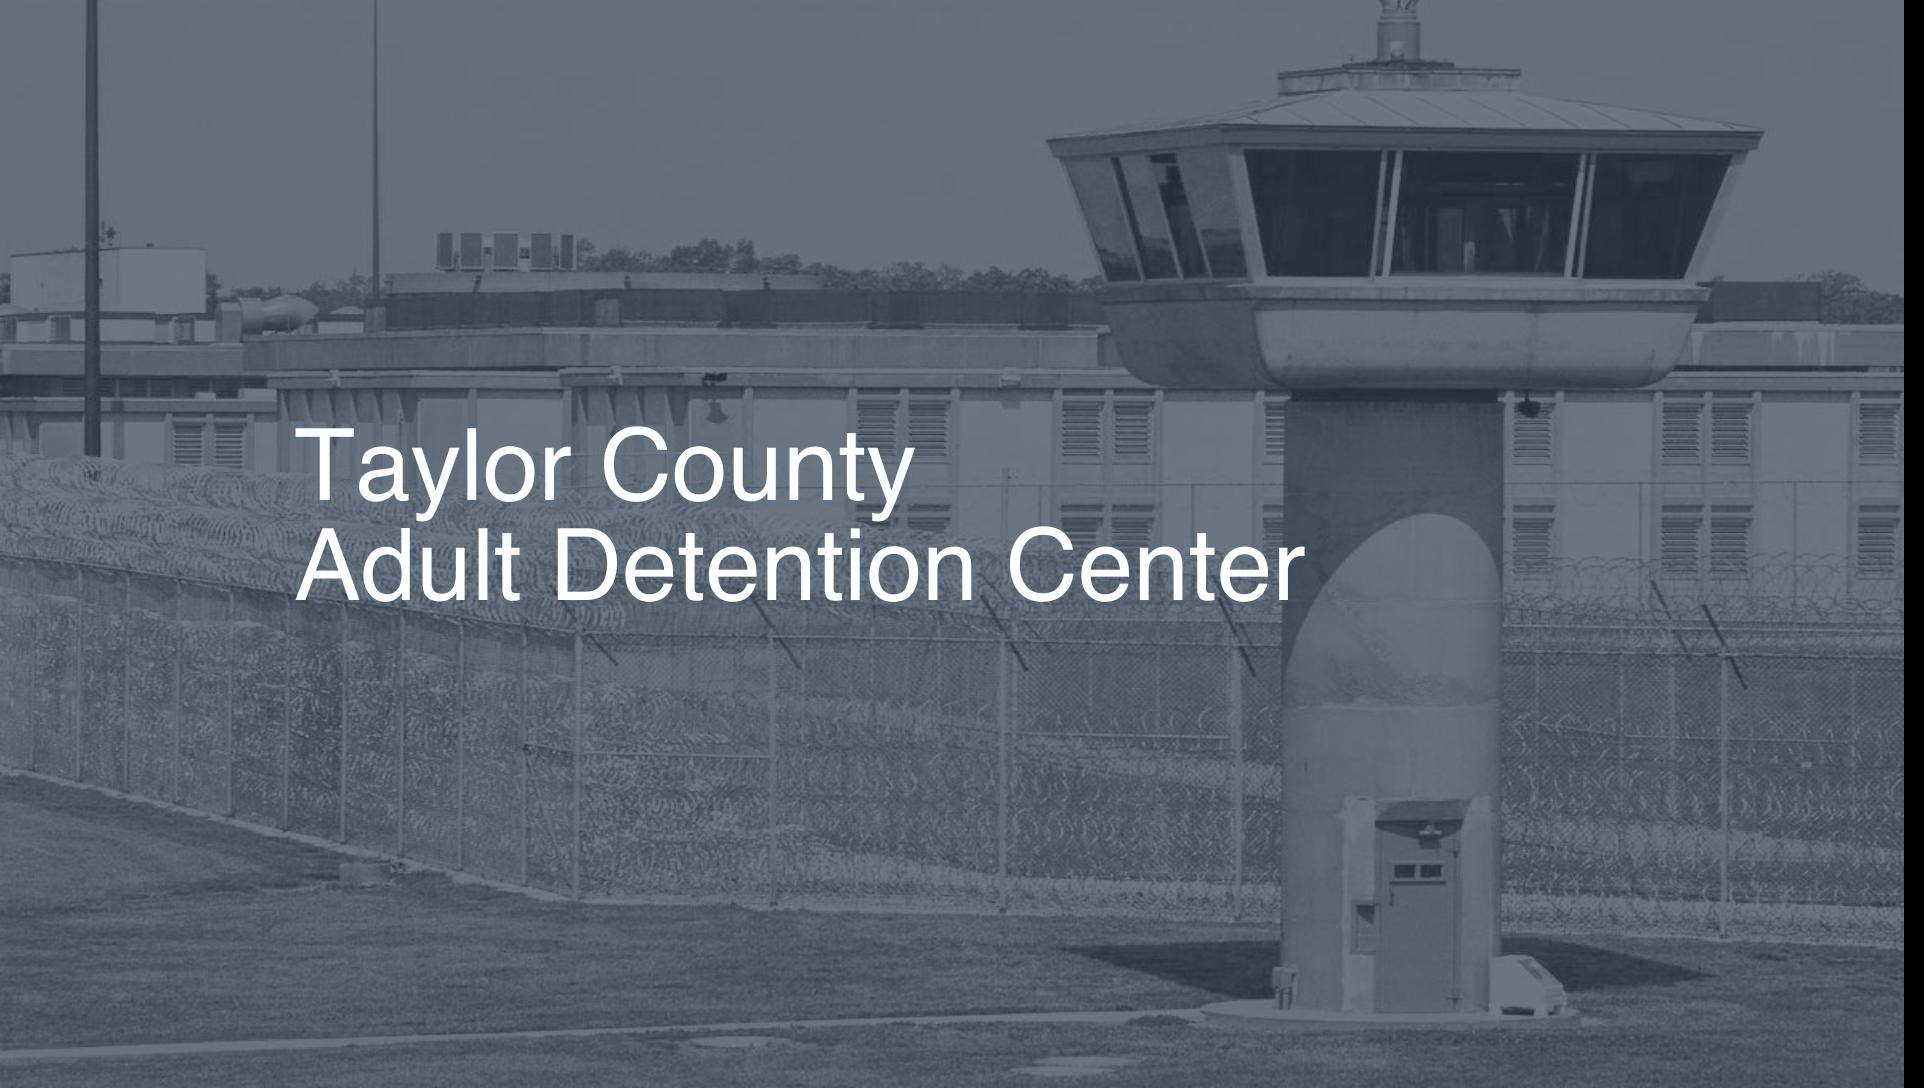 Taylor County Adult Detention Center | Pigeonly - Inmate